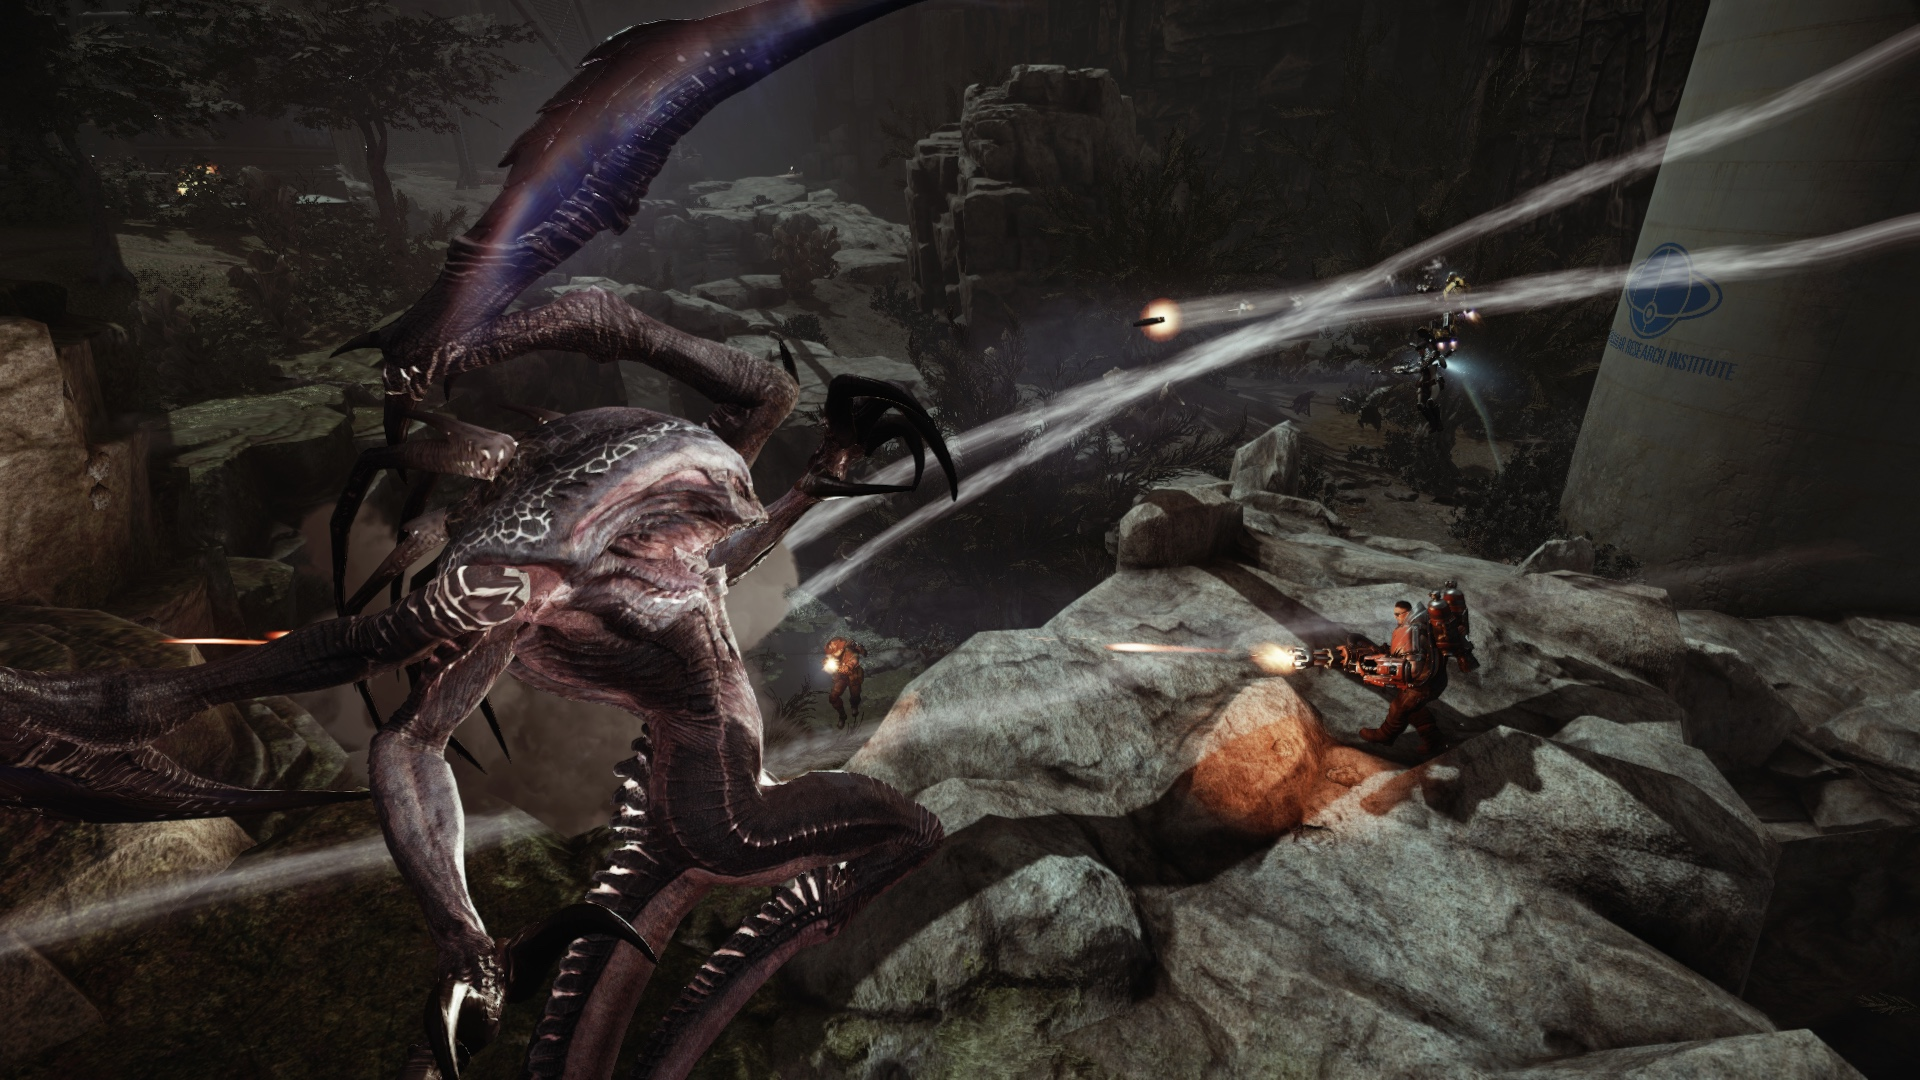 These New Evolve Screens Are All About The Wraith VG247